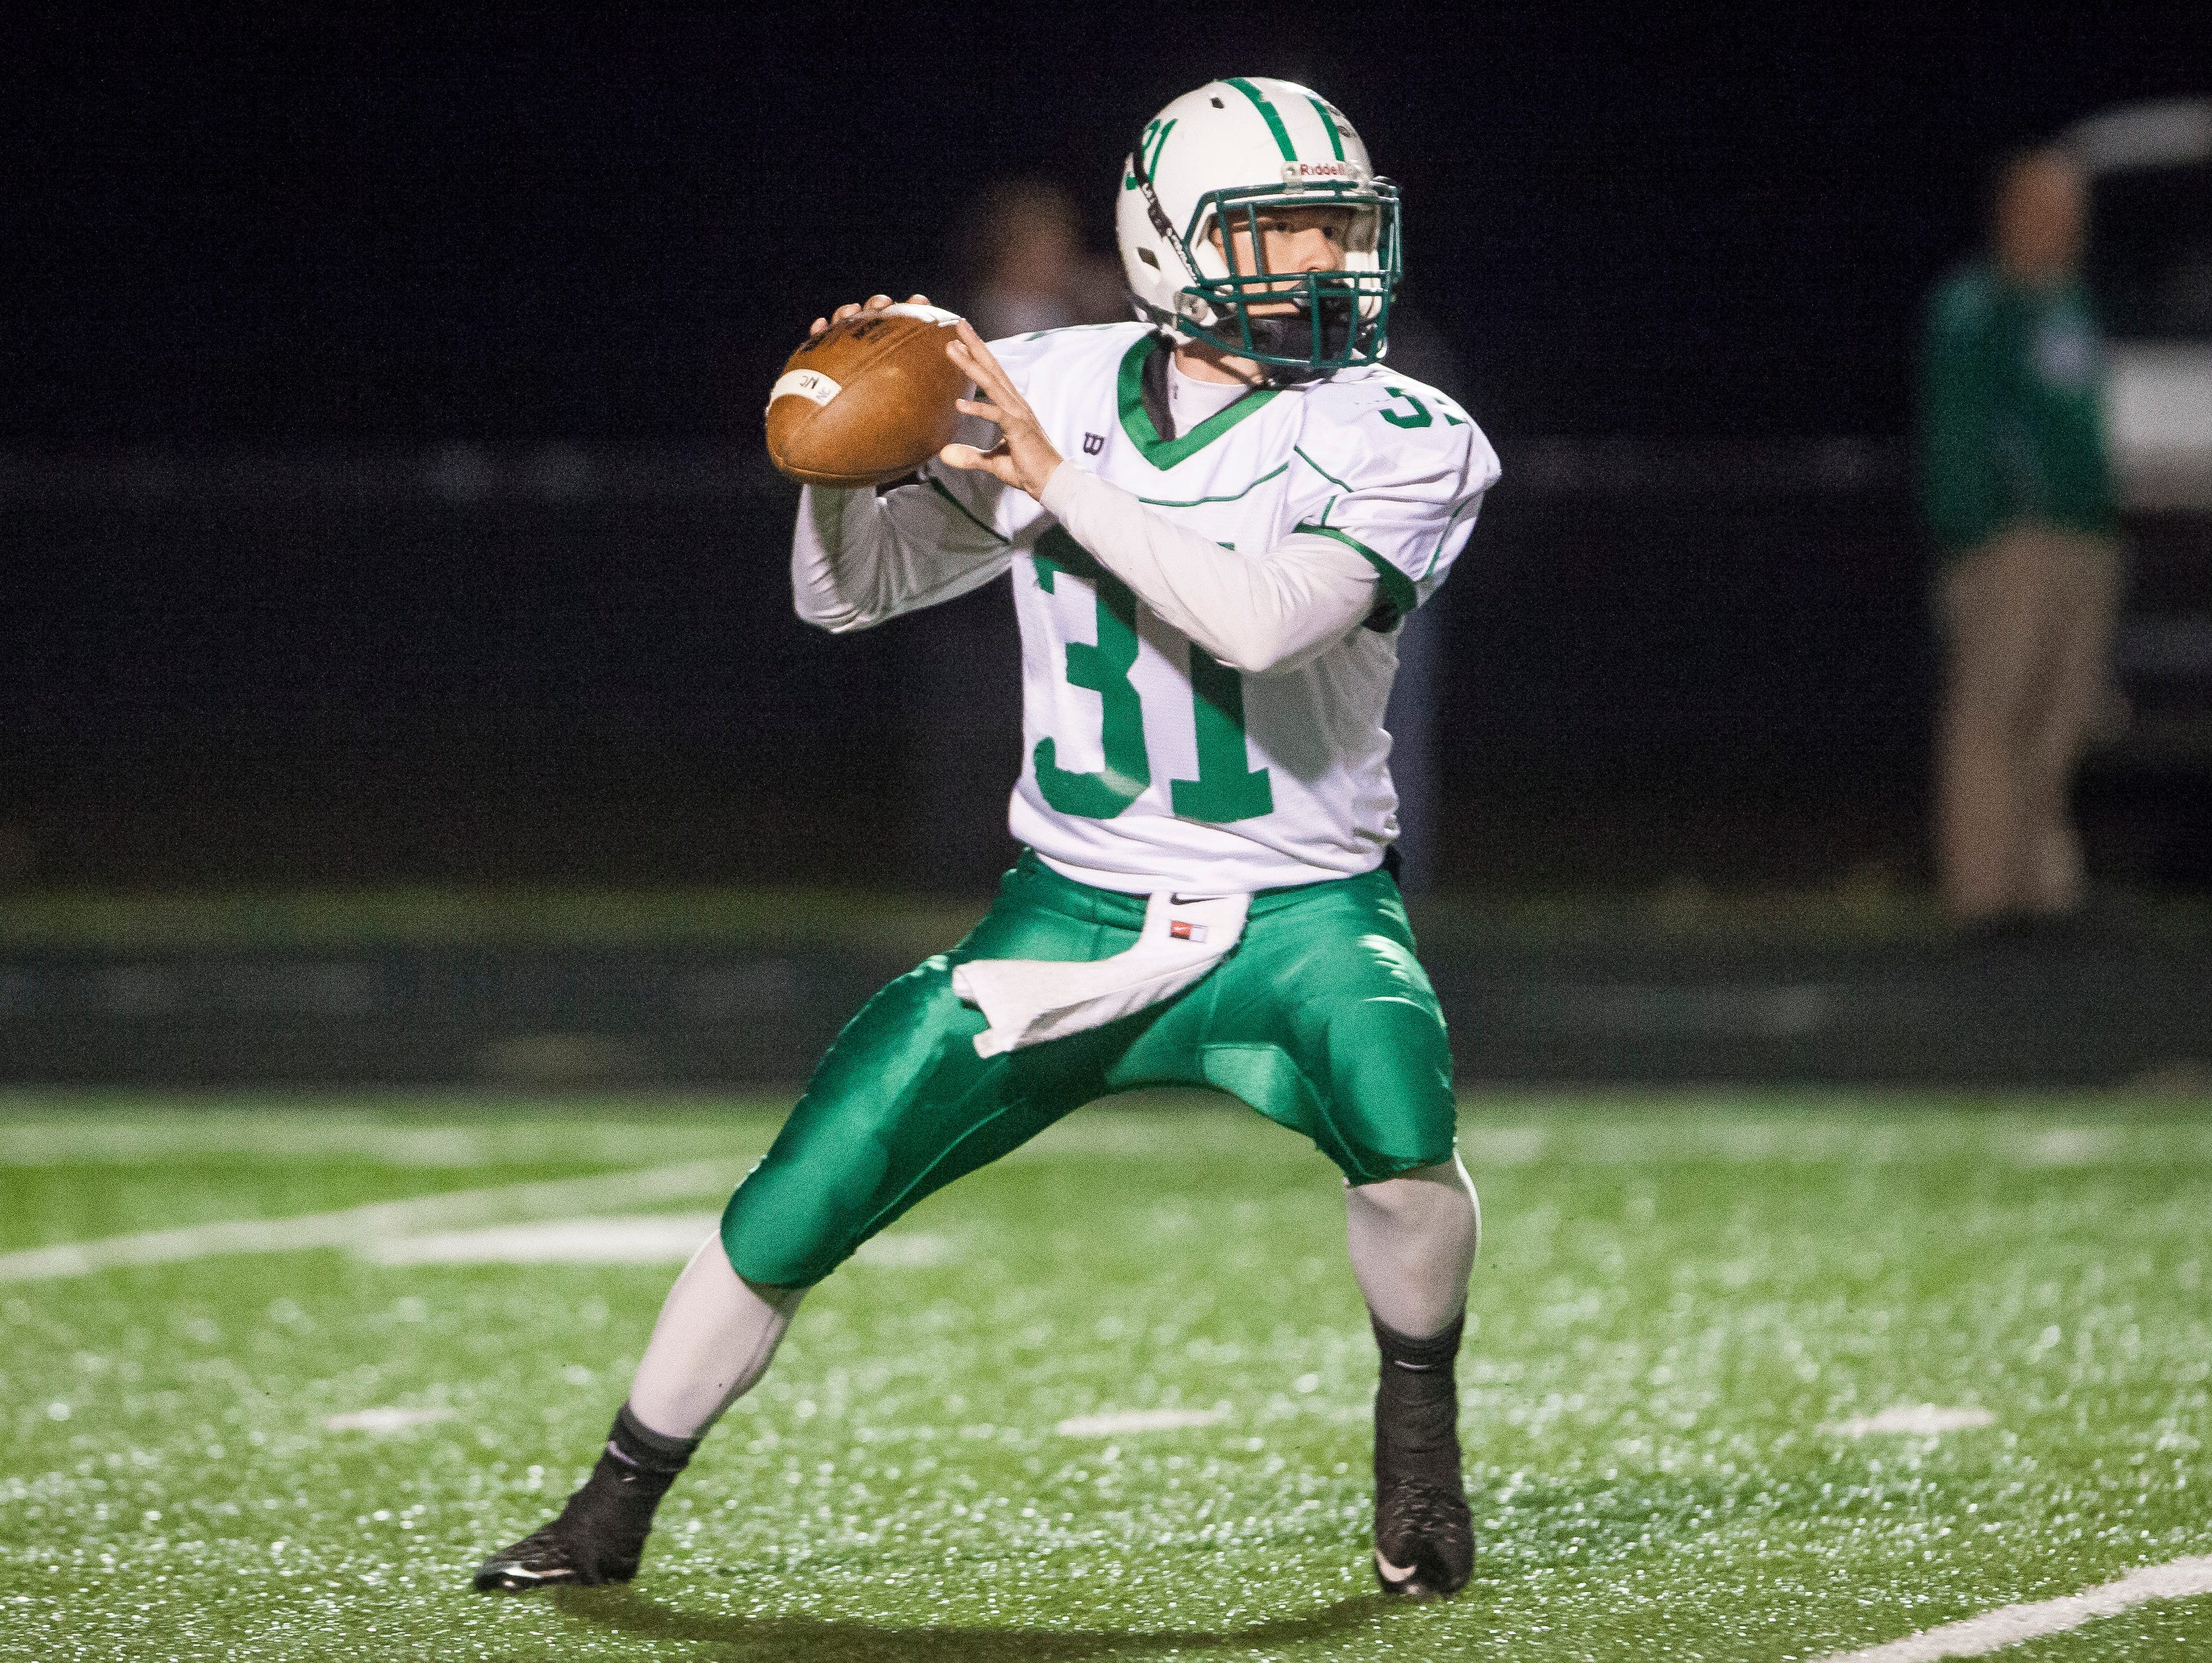 New Castle's Dalton Engle draws back for the pass Friday night during the sectional game at Delta. Delta won 49-7.